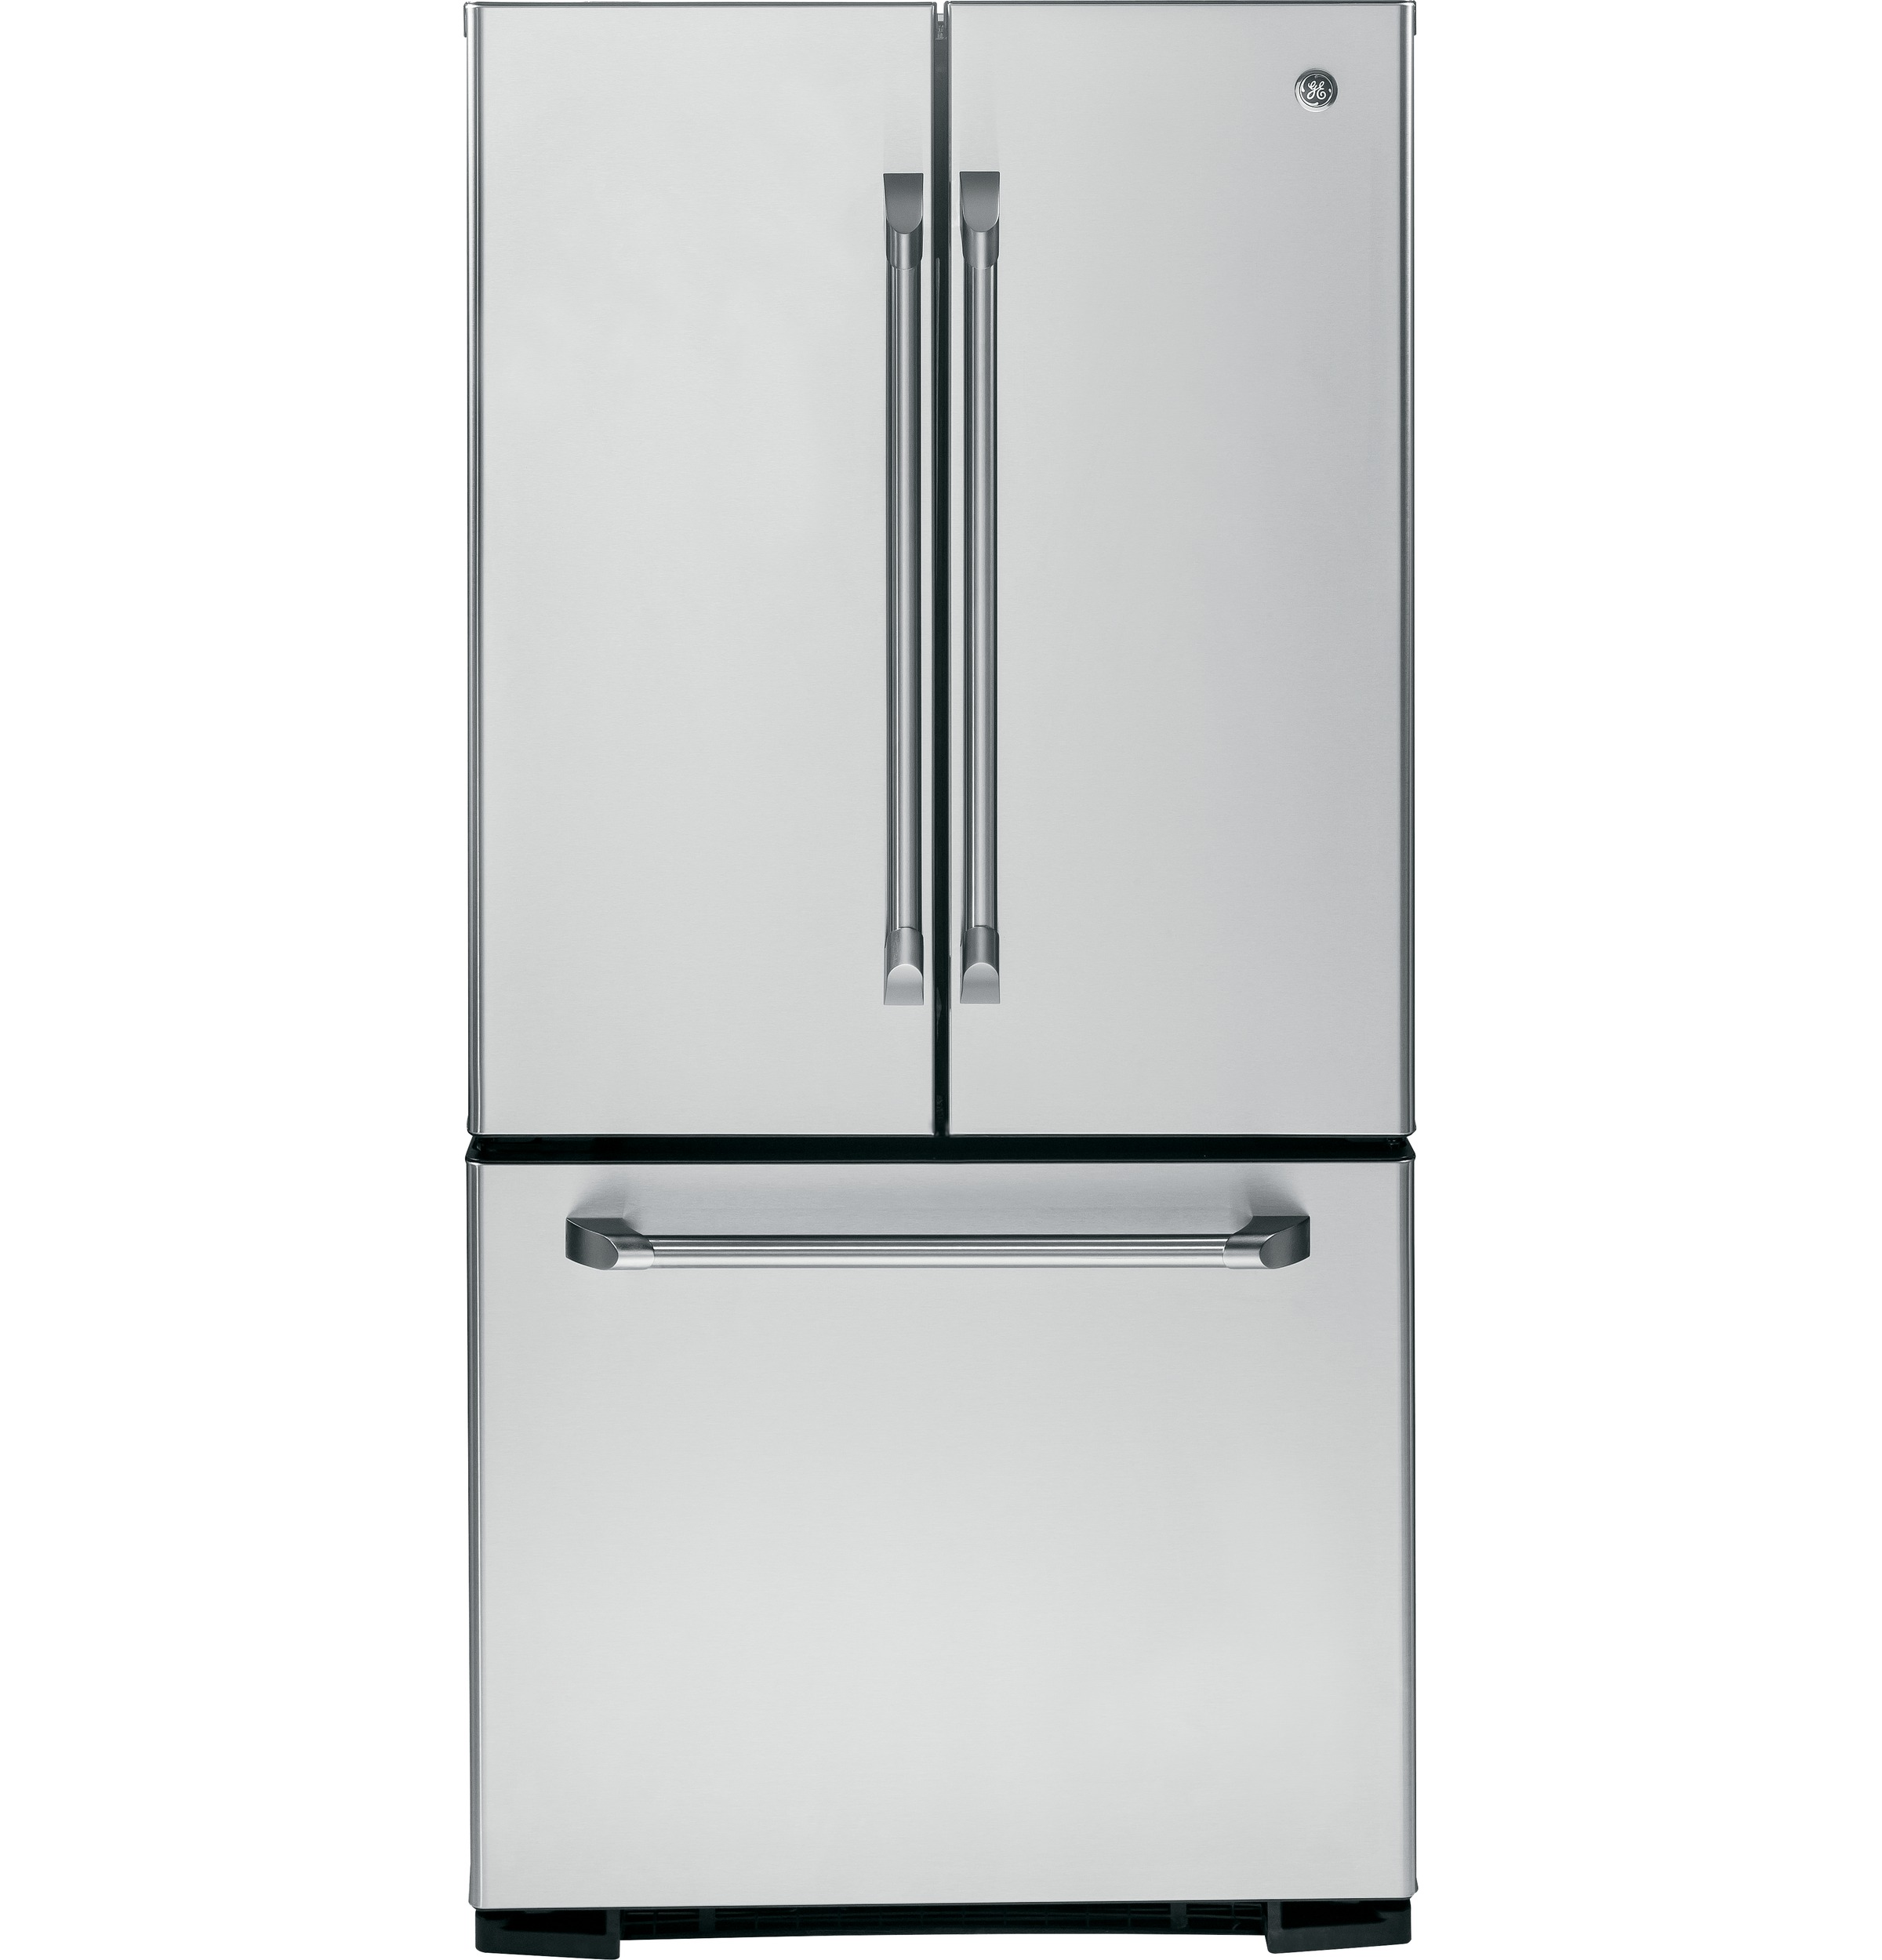 Ge caf series 227 cu ft french door refrigerator with product image rubansaba